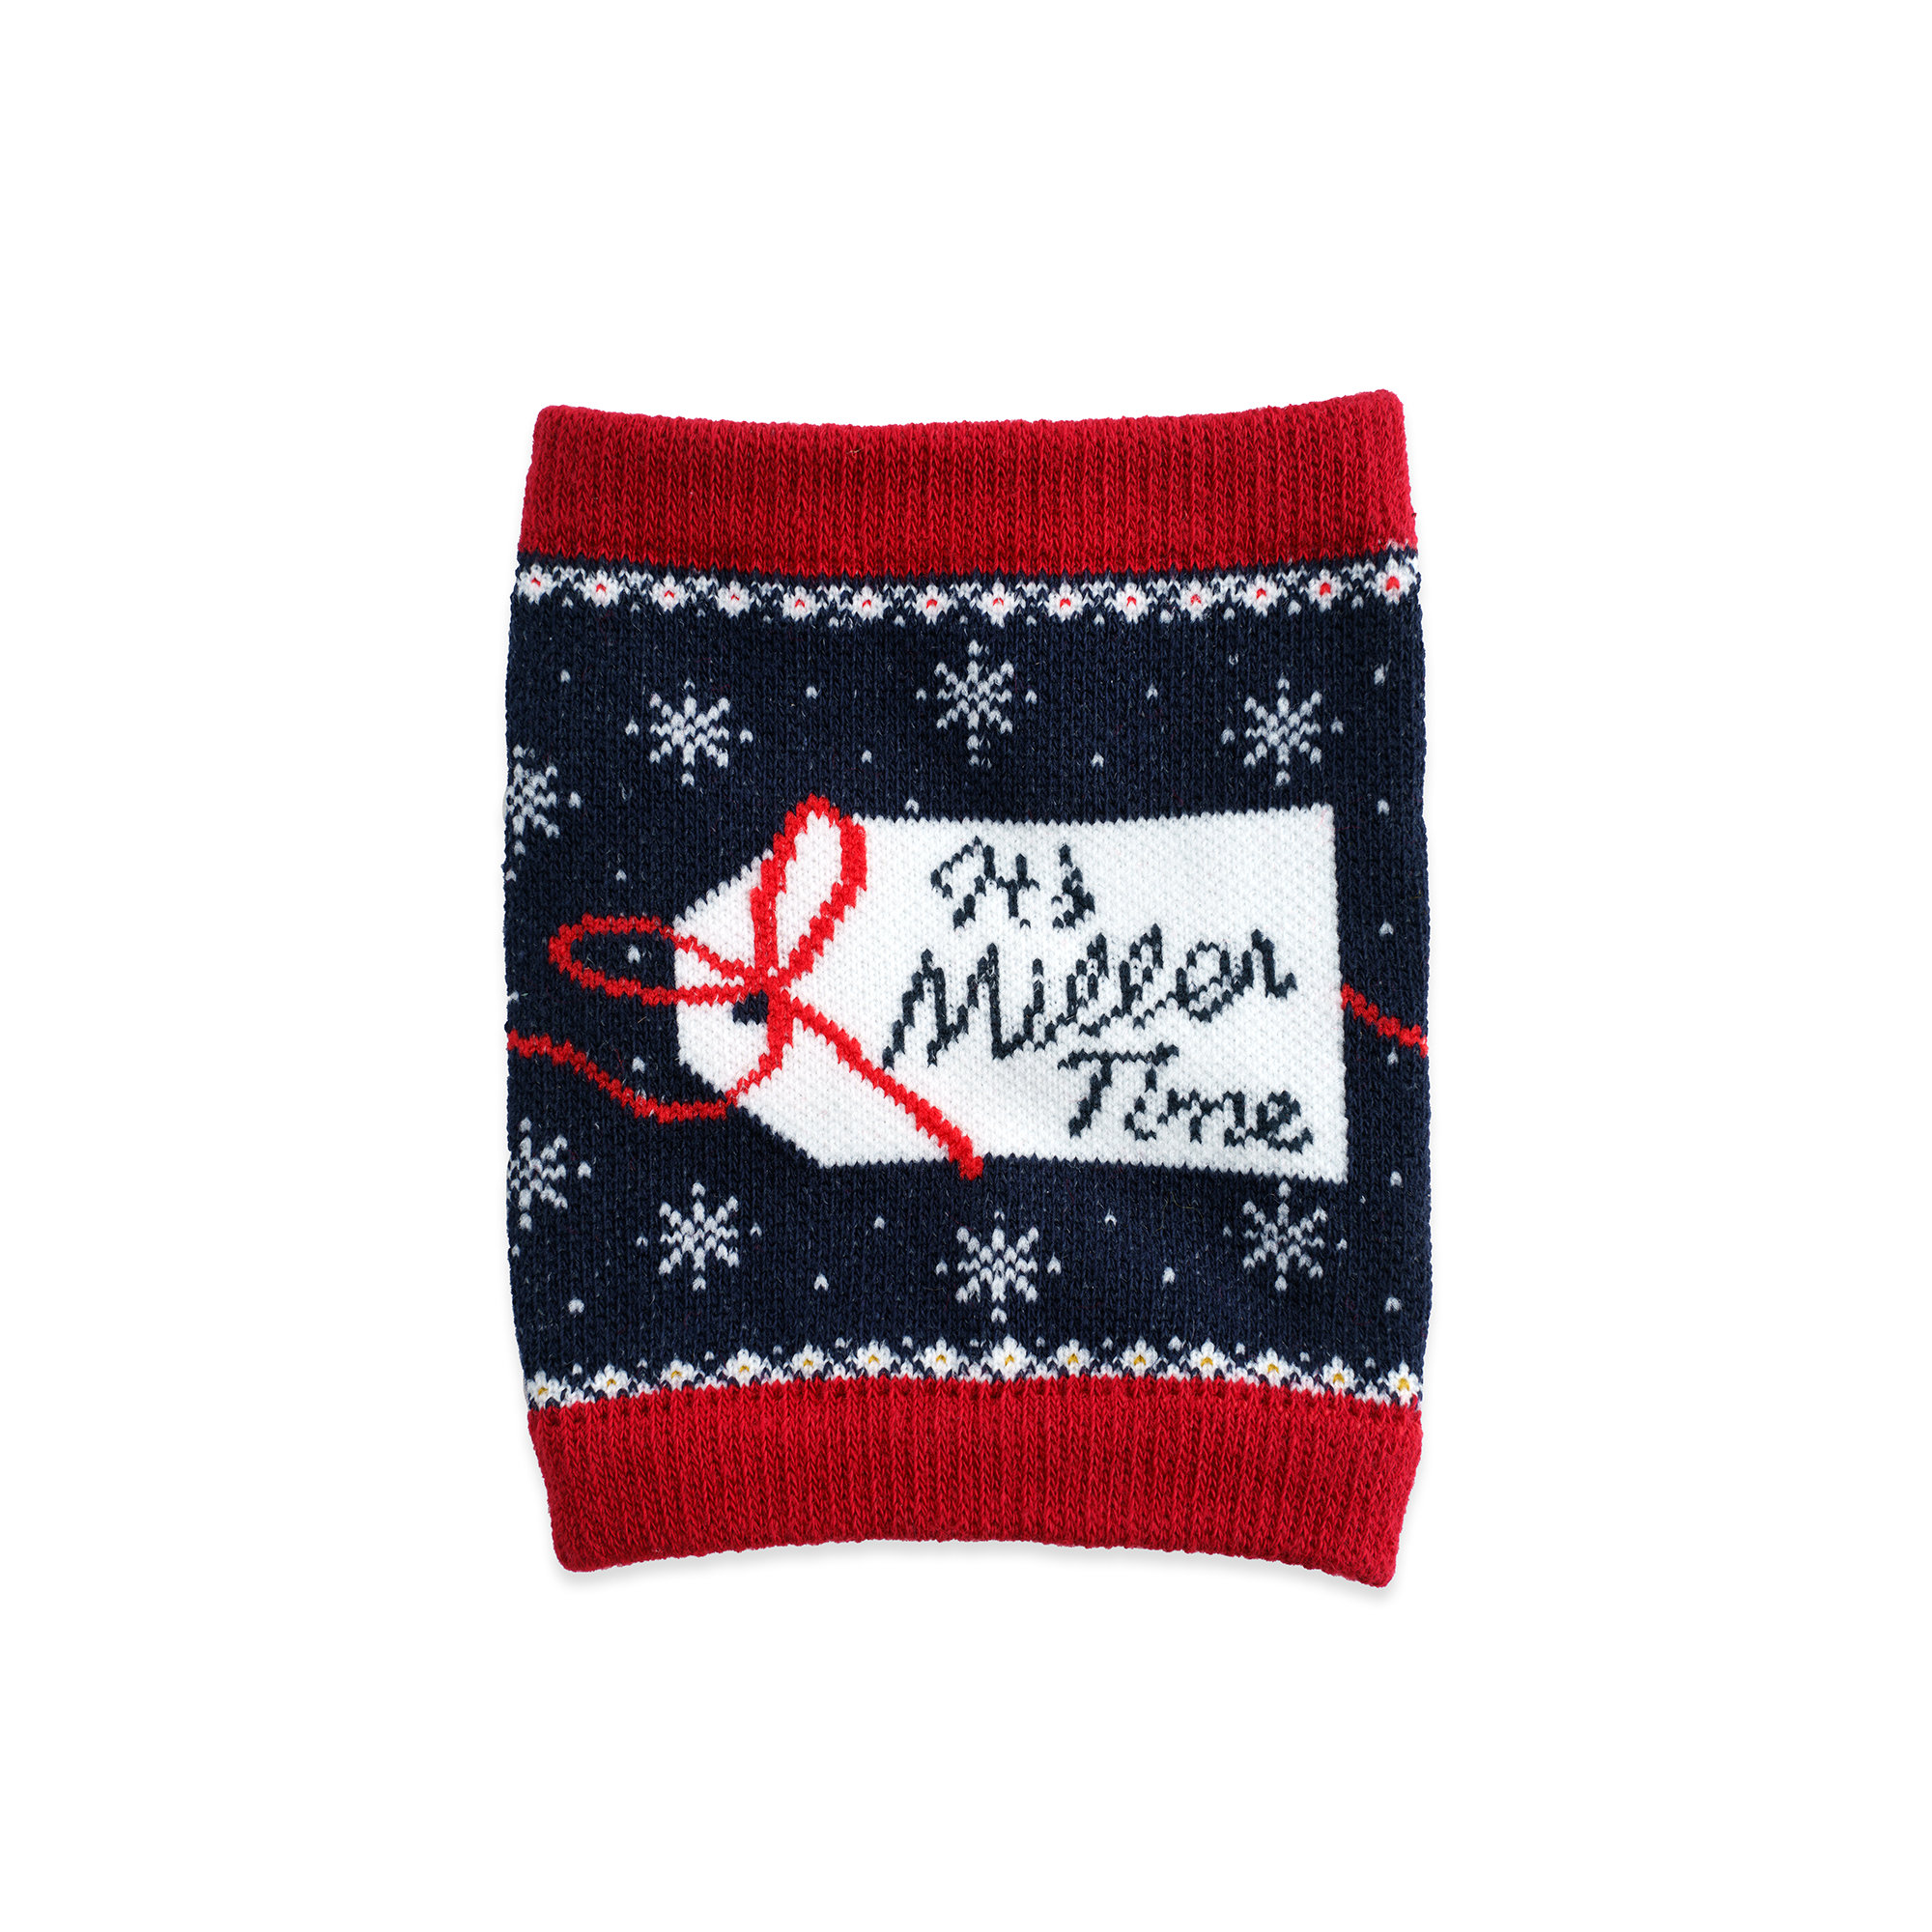 MILLER LITE UGLY SWEATER KNIT BEVERAGE WRAP